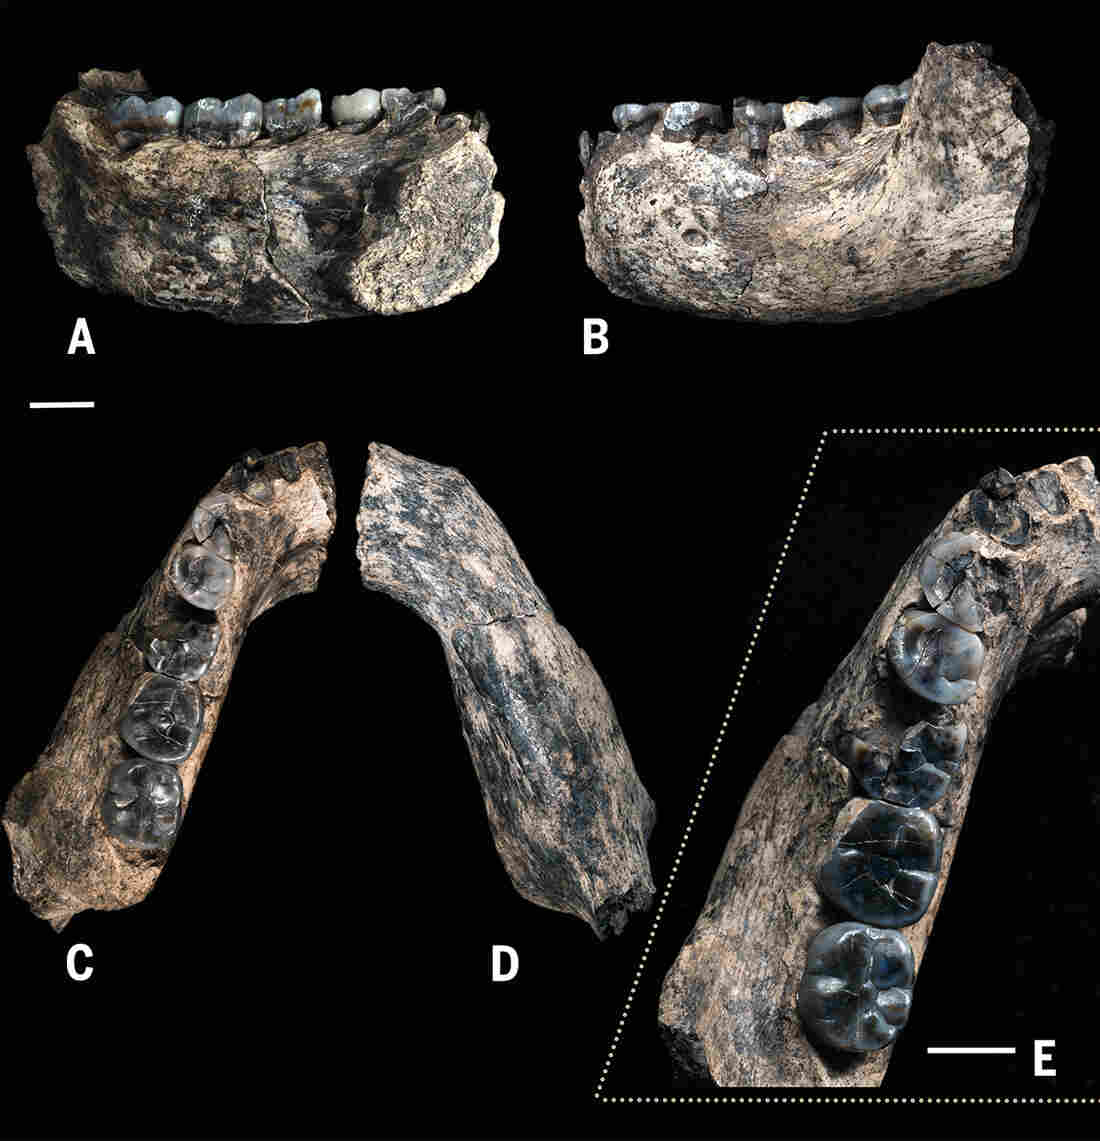 Five views of the fossilized jawbone highlight teeth that are becoming more slender, scientists say, relative to the blocky, more apelike teeth of Australopithecus.